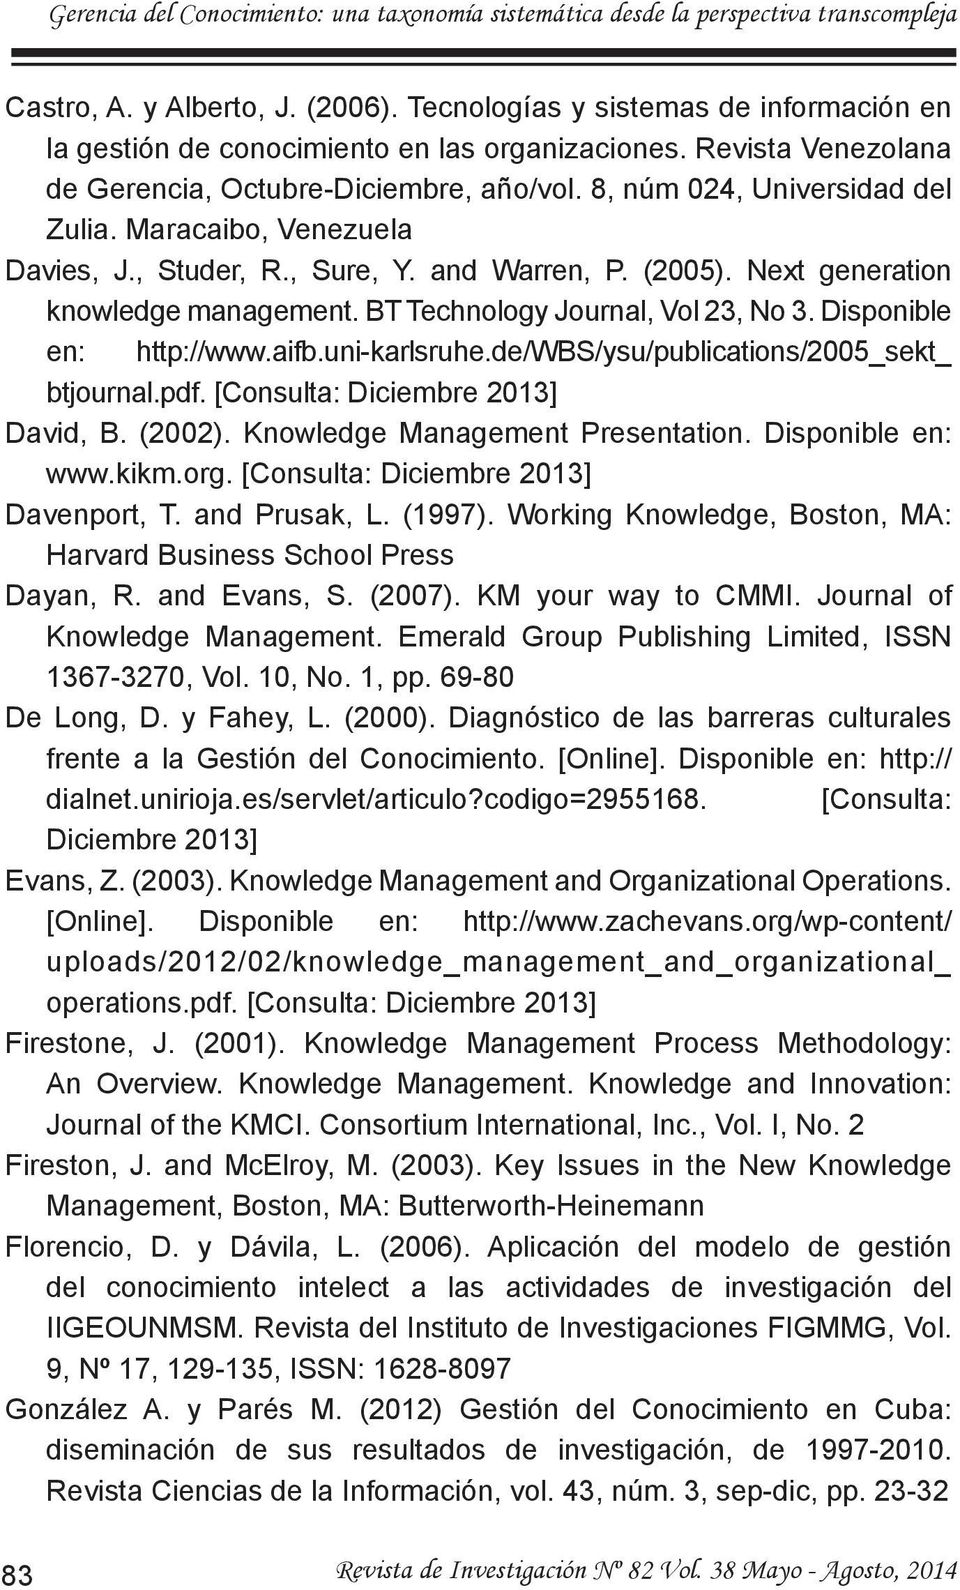 Disponible en: http://www.aifb.uni-karlsruhe.de/wbs/ysu/publications/2005_sekt_ btjournal.pdf. [Consulta: Diciembre 2013] David, B. (2002). Knowledge Management Presentation. Disponible en: www.kikm.